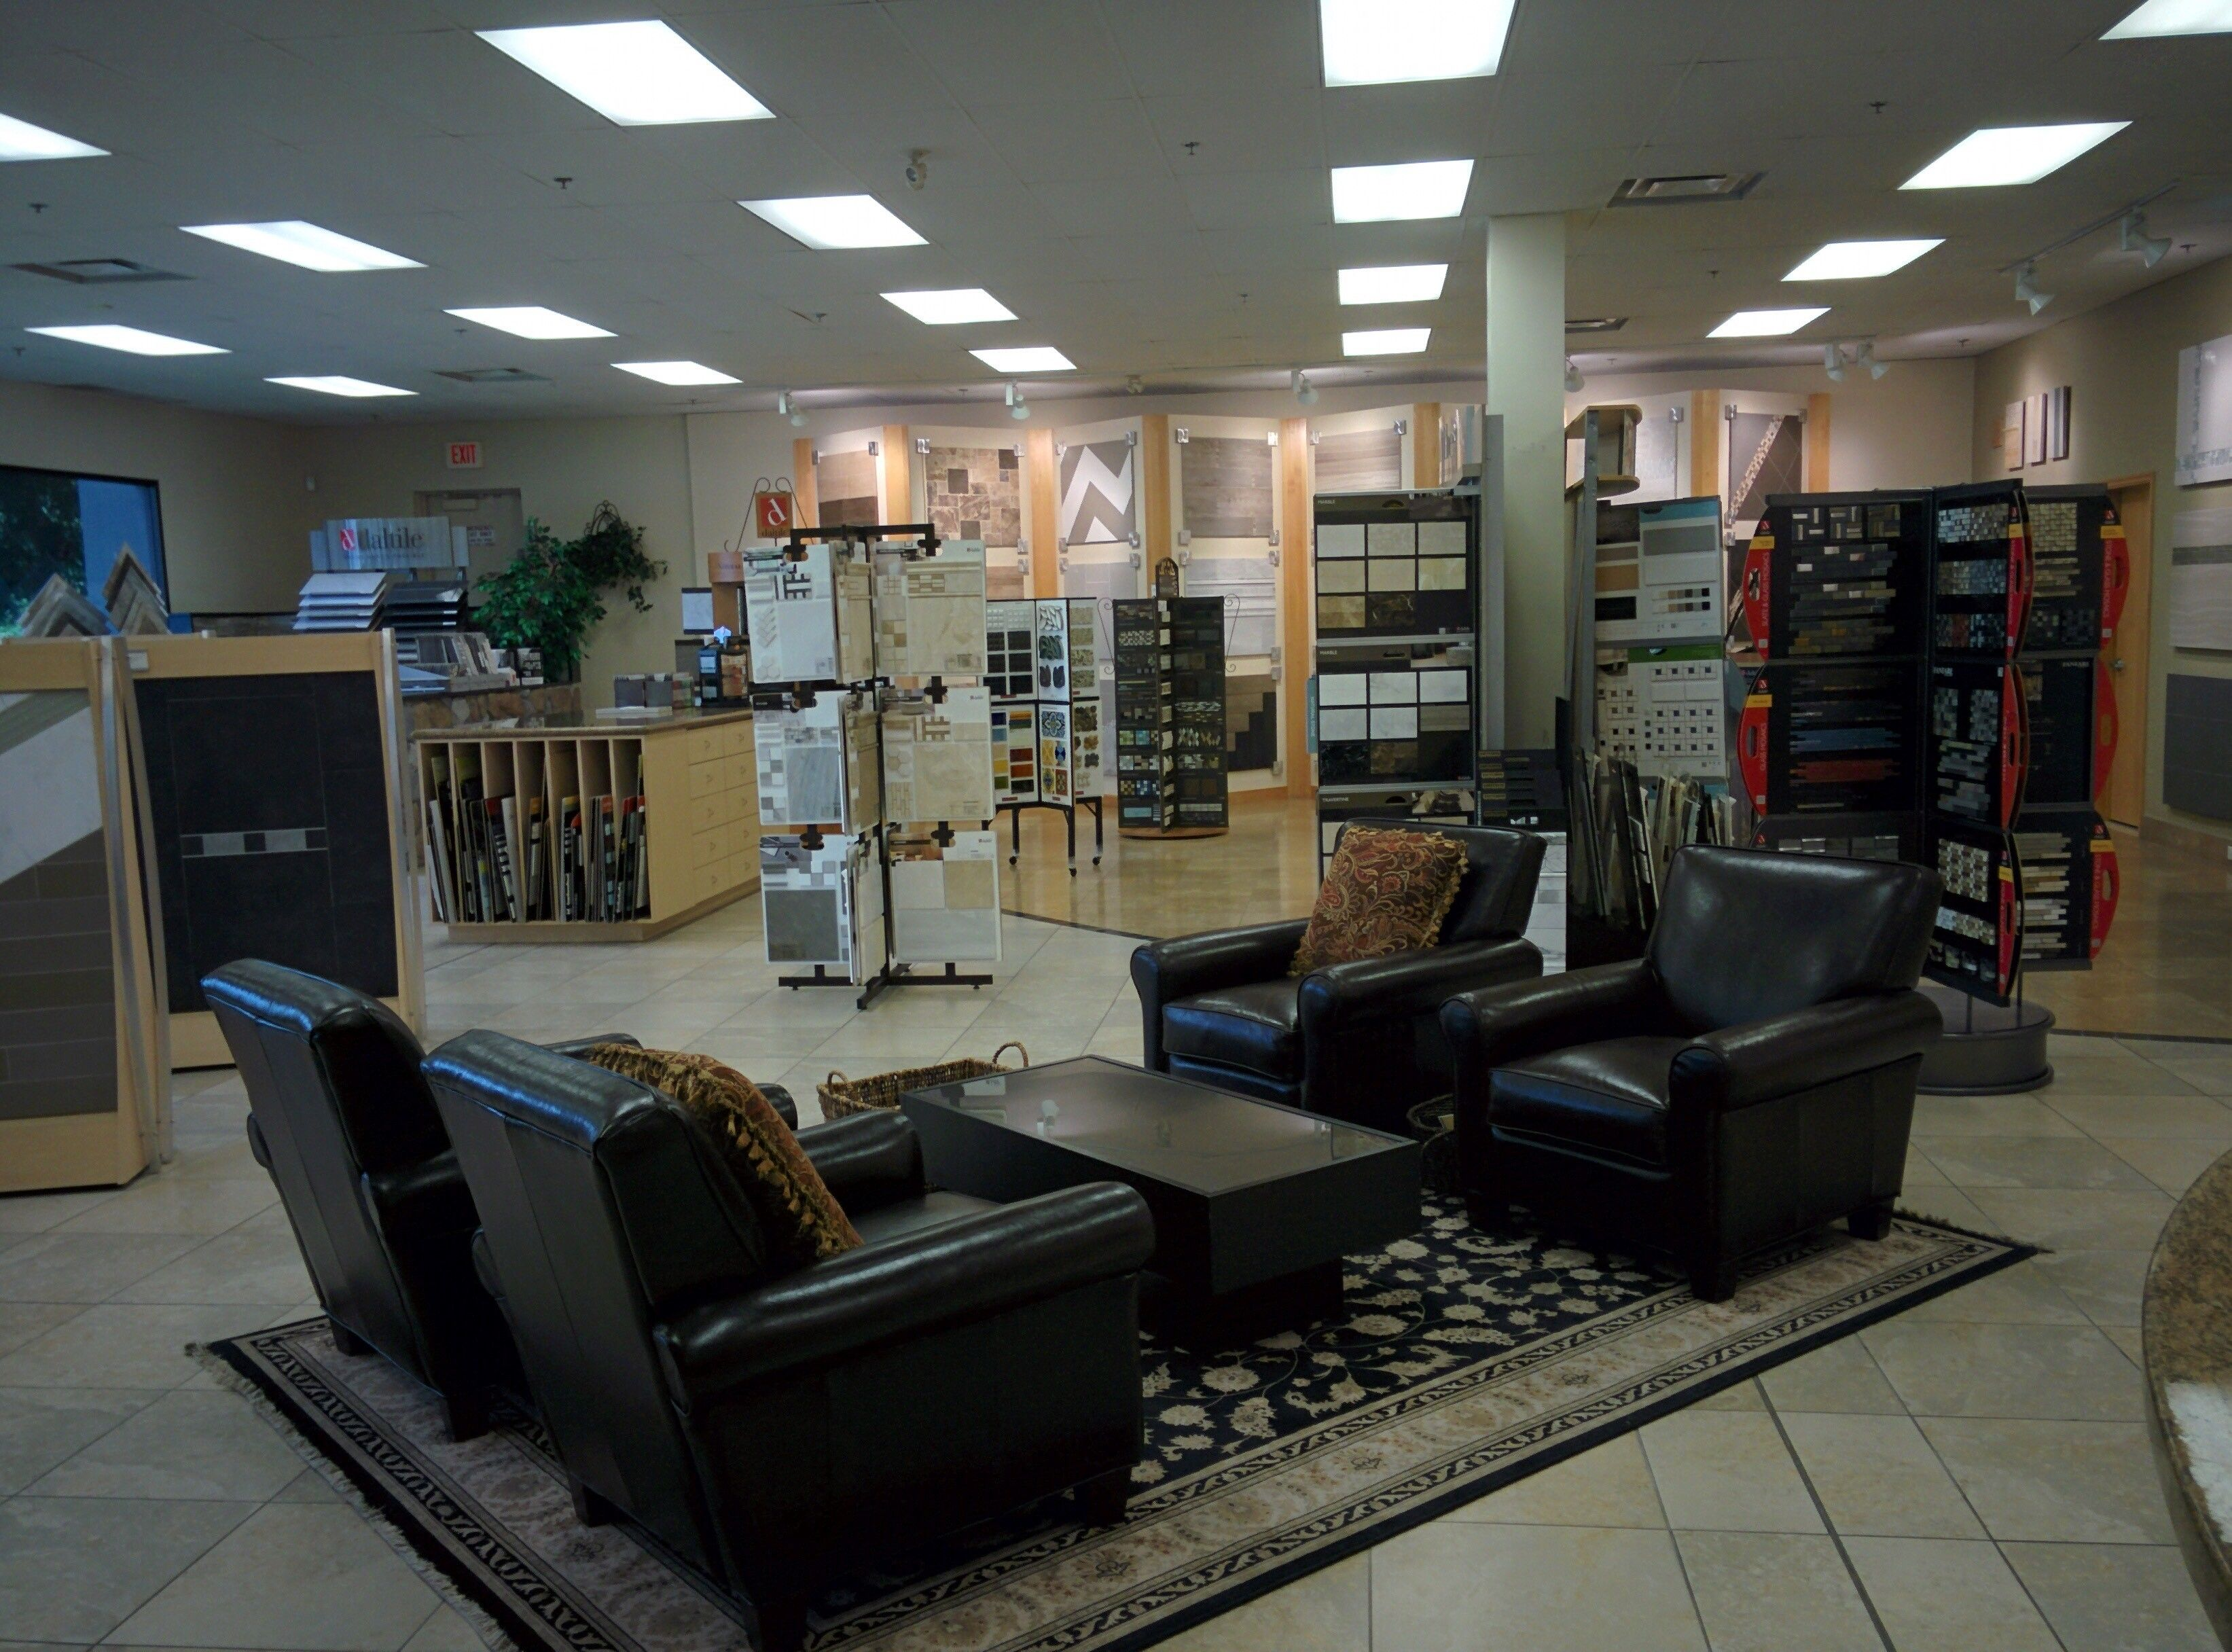 Showroom At At Daltile Vancouver Featuring Tile And Stone Mosaics From Daltile Americanolean And Others Daltile Olean Home Decor